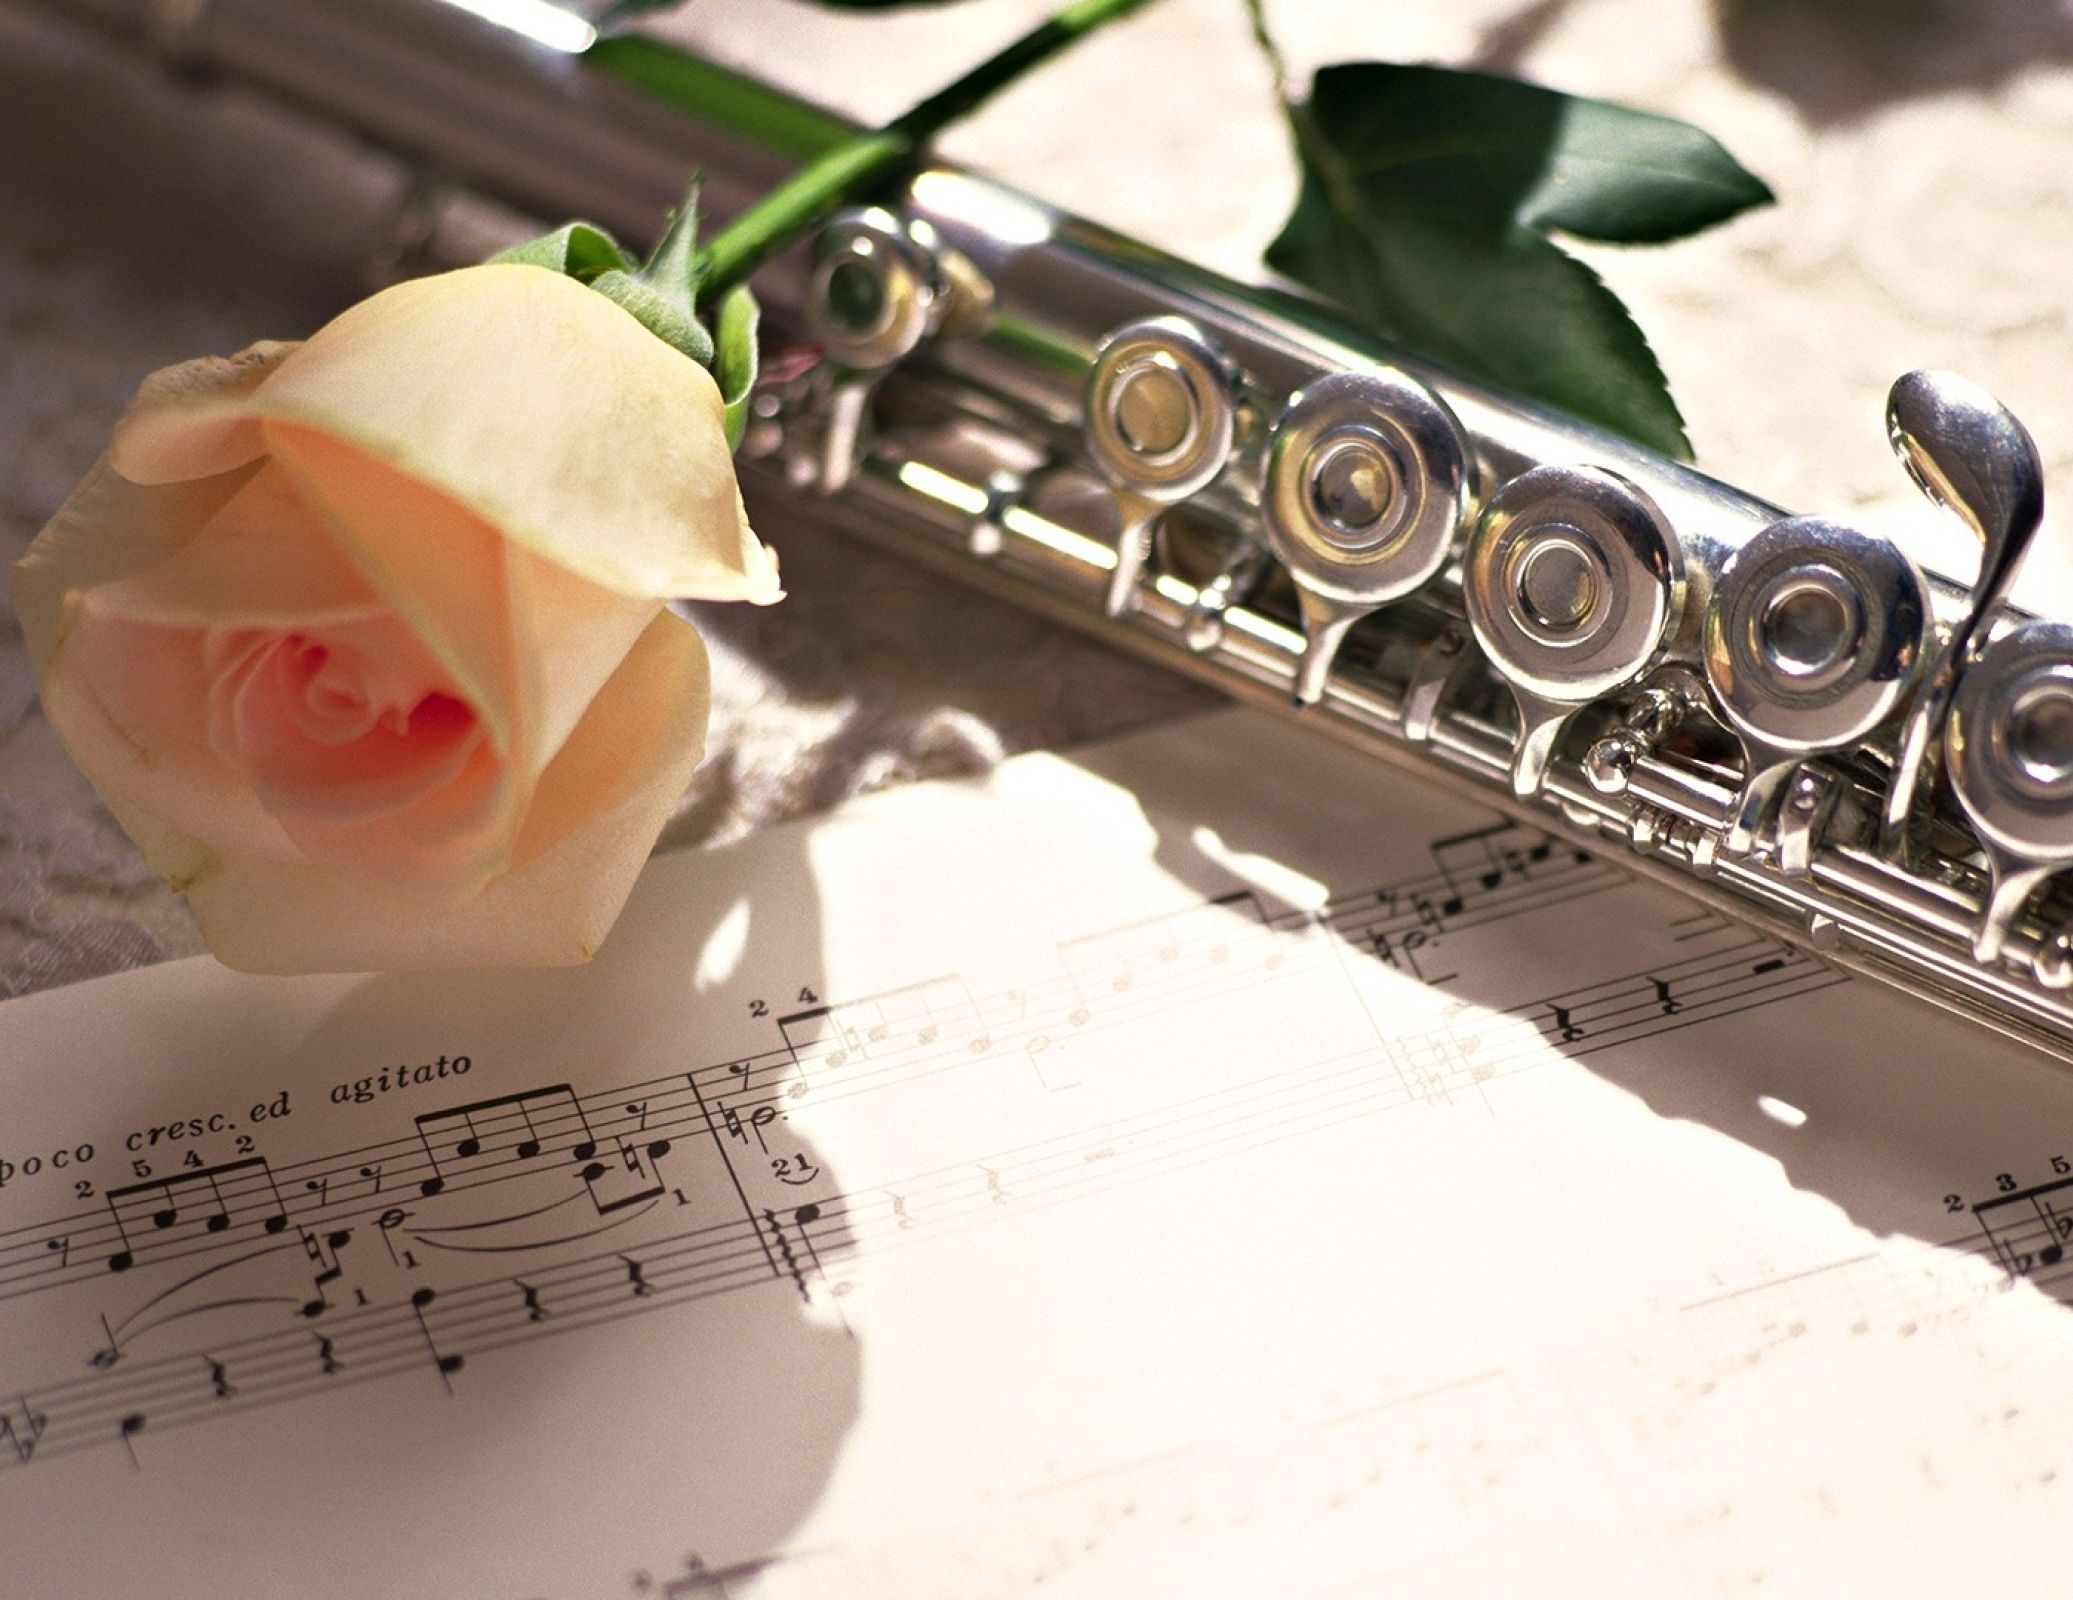 Definition of Flute by Merriam-Webster